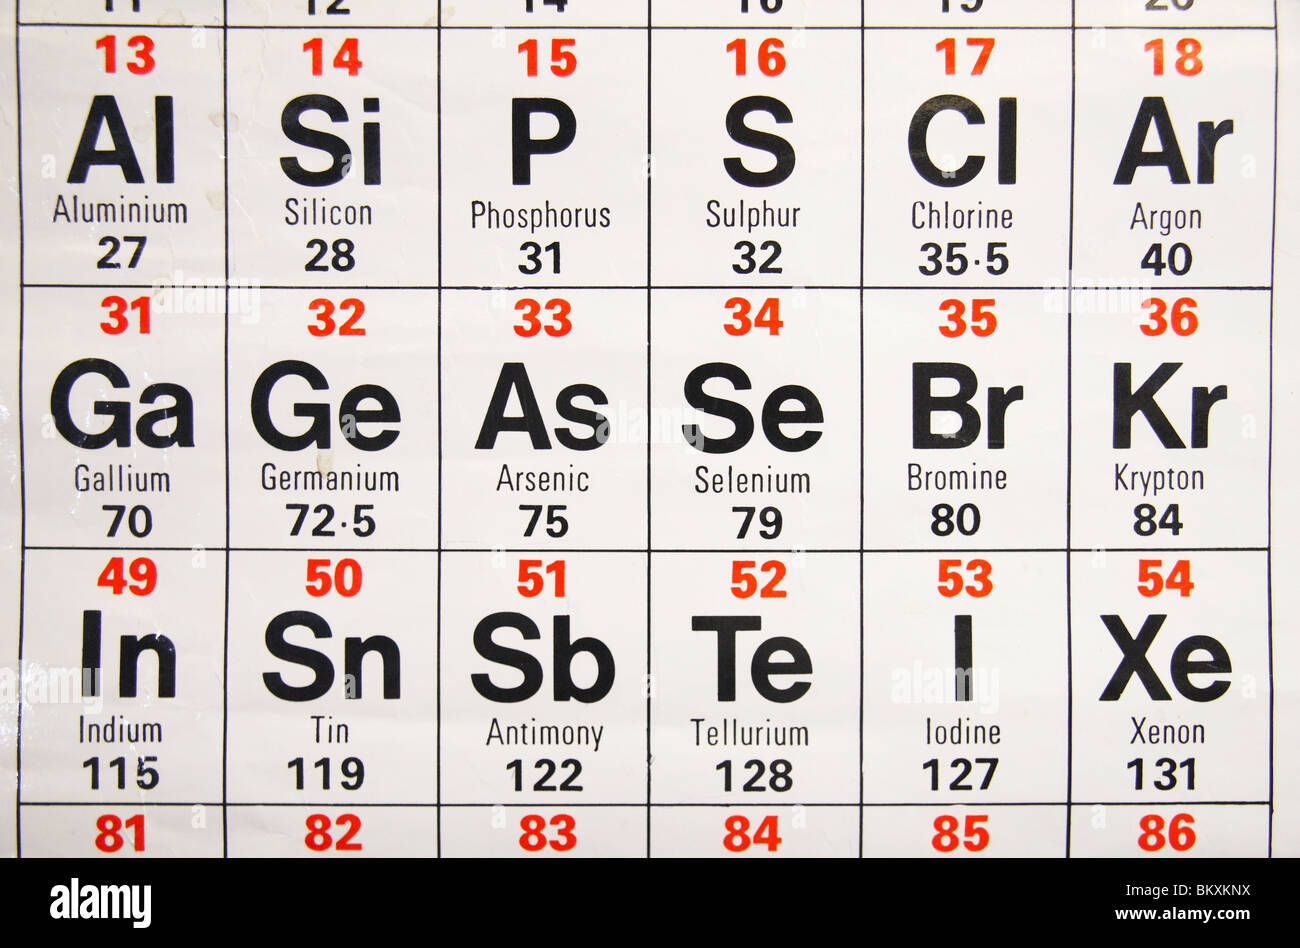 Tremendous Close Up View Of A Standard Uk High School Periodic Table Download Free Architecture Designs Intelgarnamadebymaigaardcom